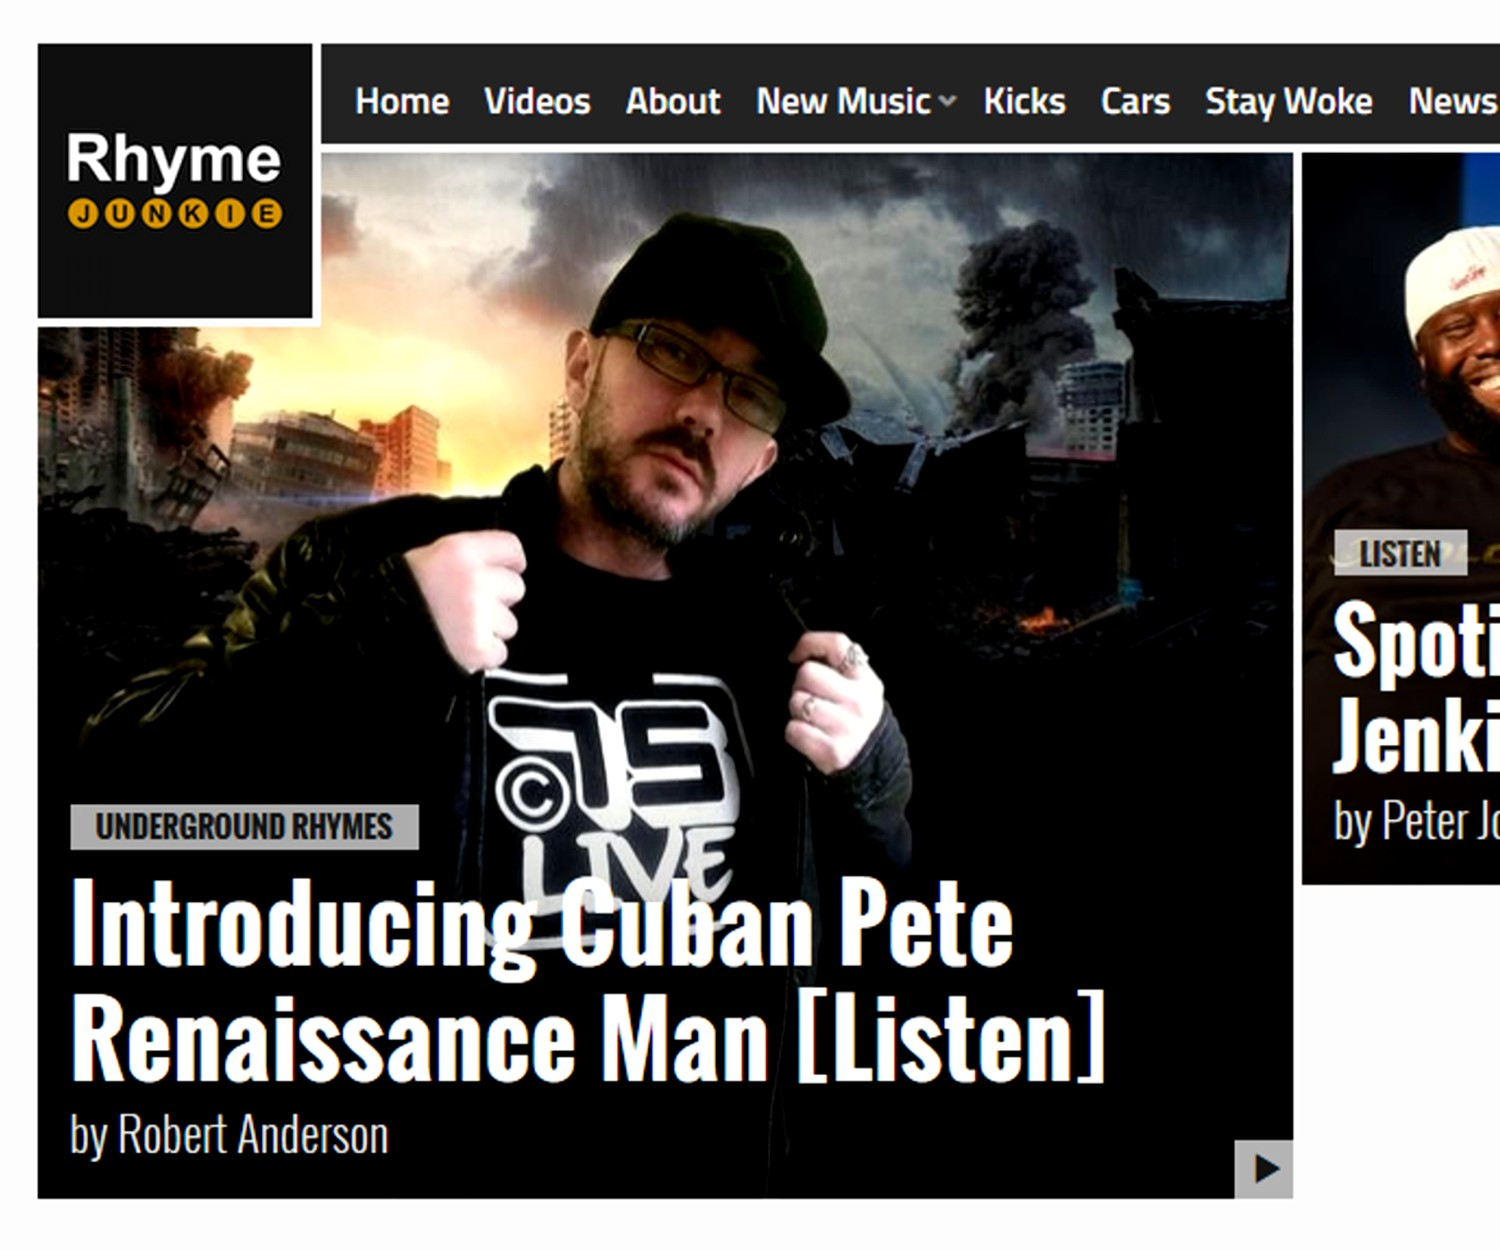 Cuban Pete on RhymeJunkie.com